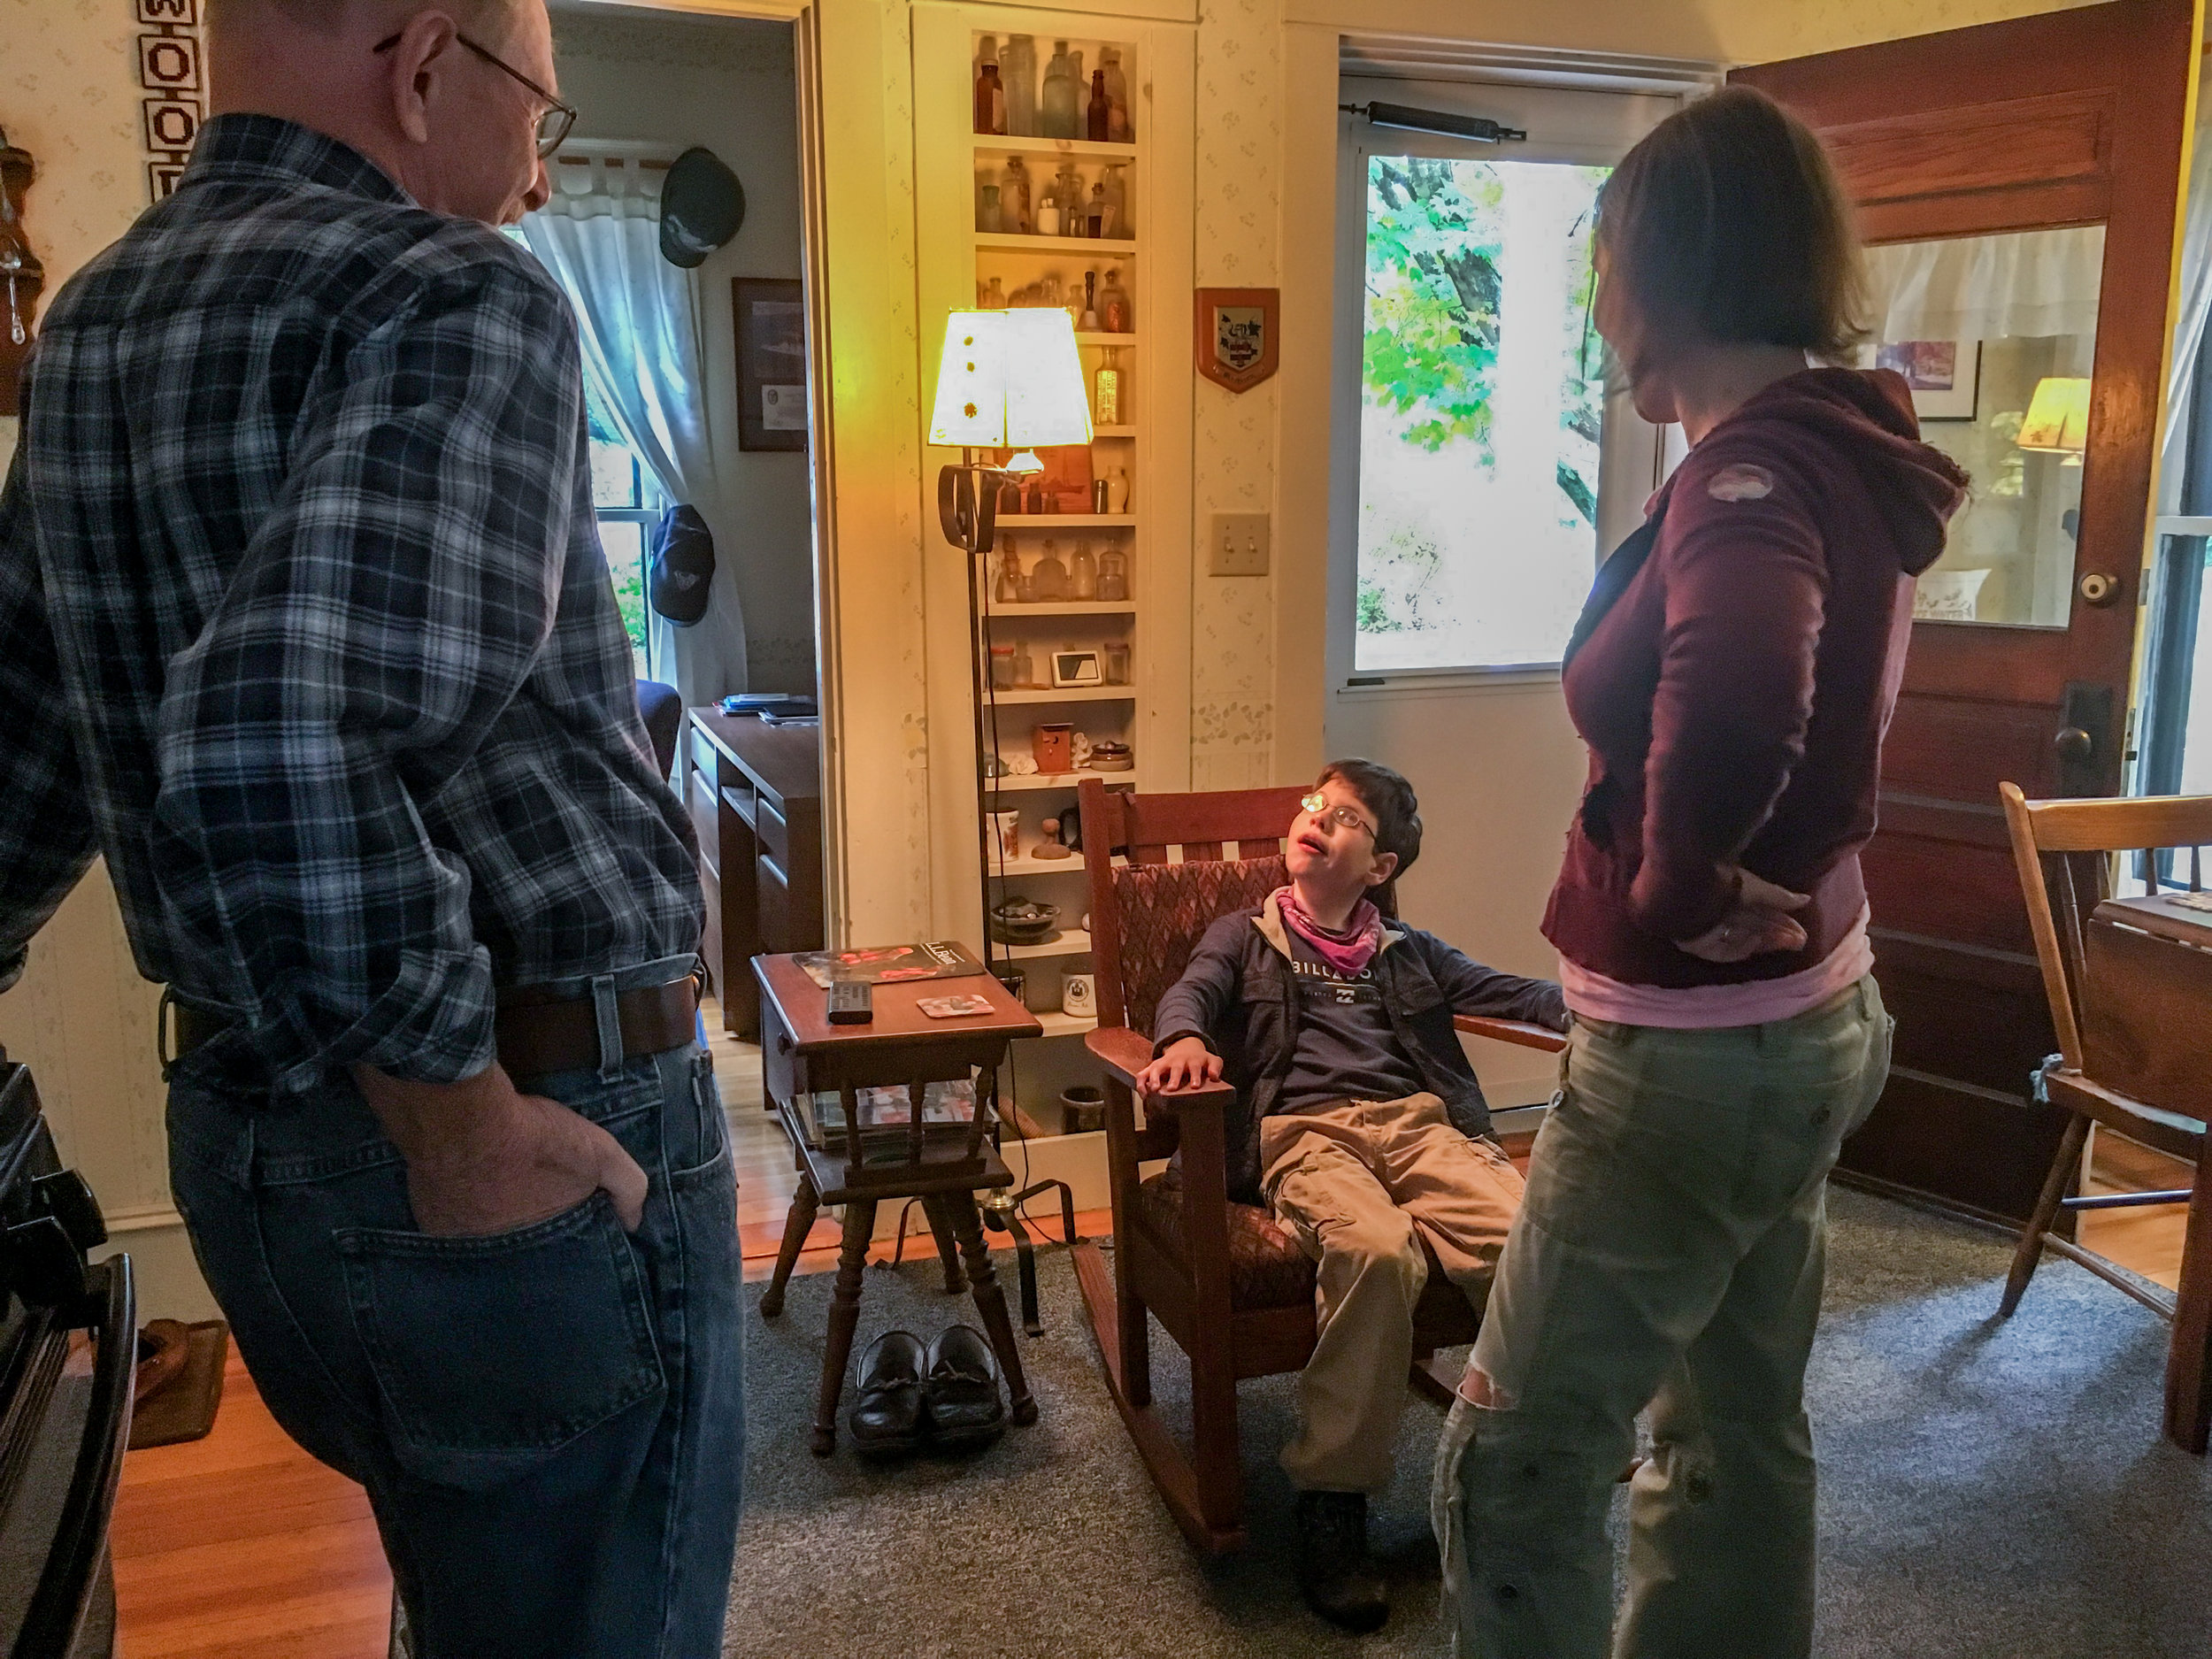 Calvin sits in a rocking chair eating a piece of chocolate at a neighbor's house on October 8, 2017 in Brunswick, Maine. Since reducing his benzo dose and adding cannabis to his treatment routine, Christy says Calvin has become calmer, more mobile, and easier to take places. Often they walk down the block to check on their elderly widowed neighbor Woody.